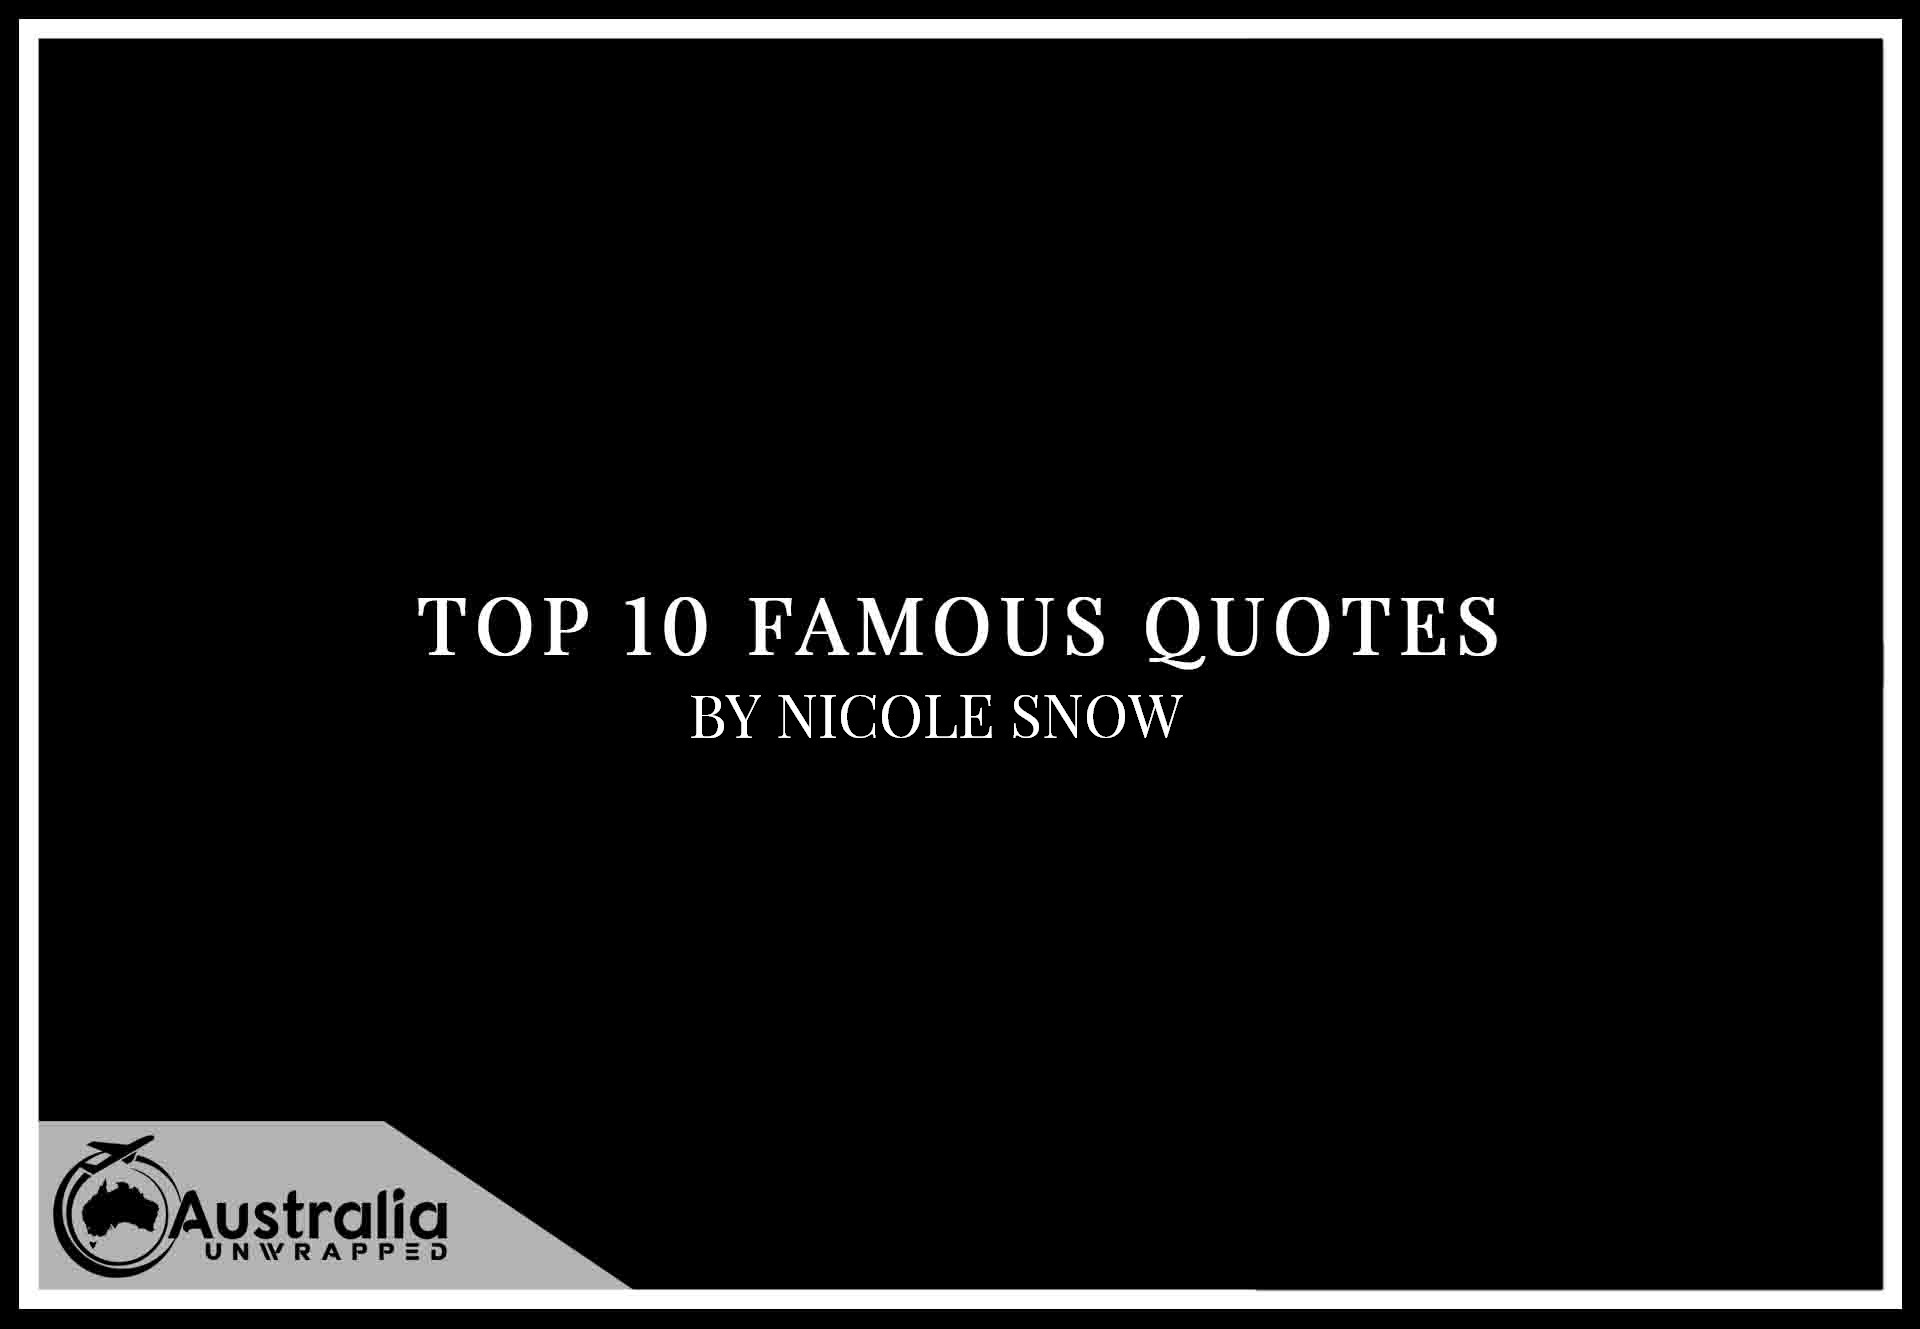 Top 10 Famous Quotes by Author Nicole Snow